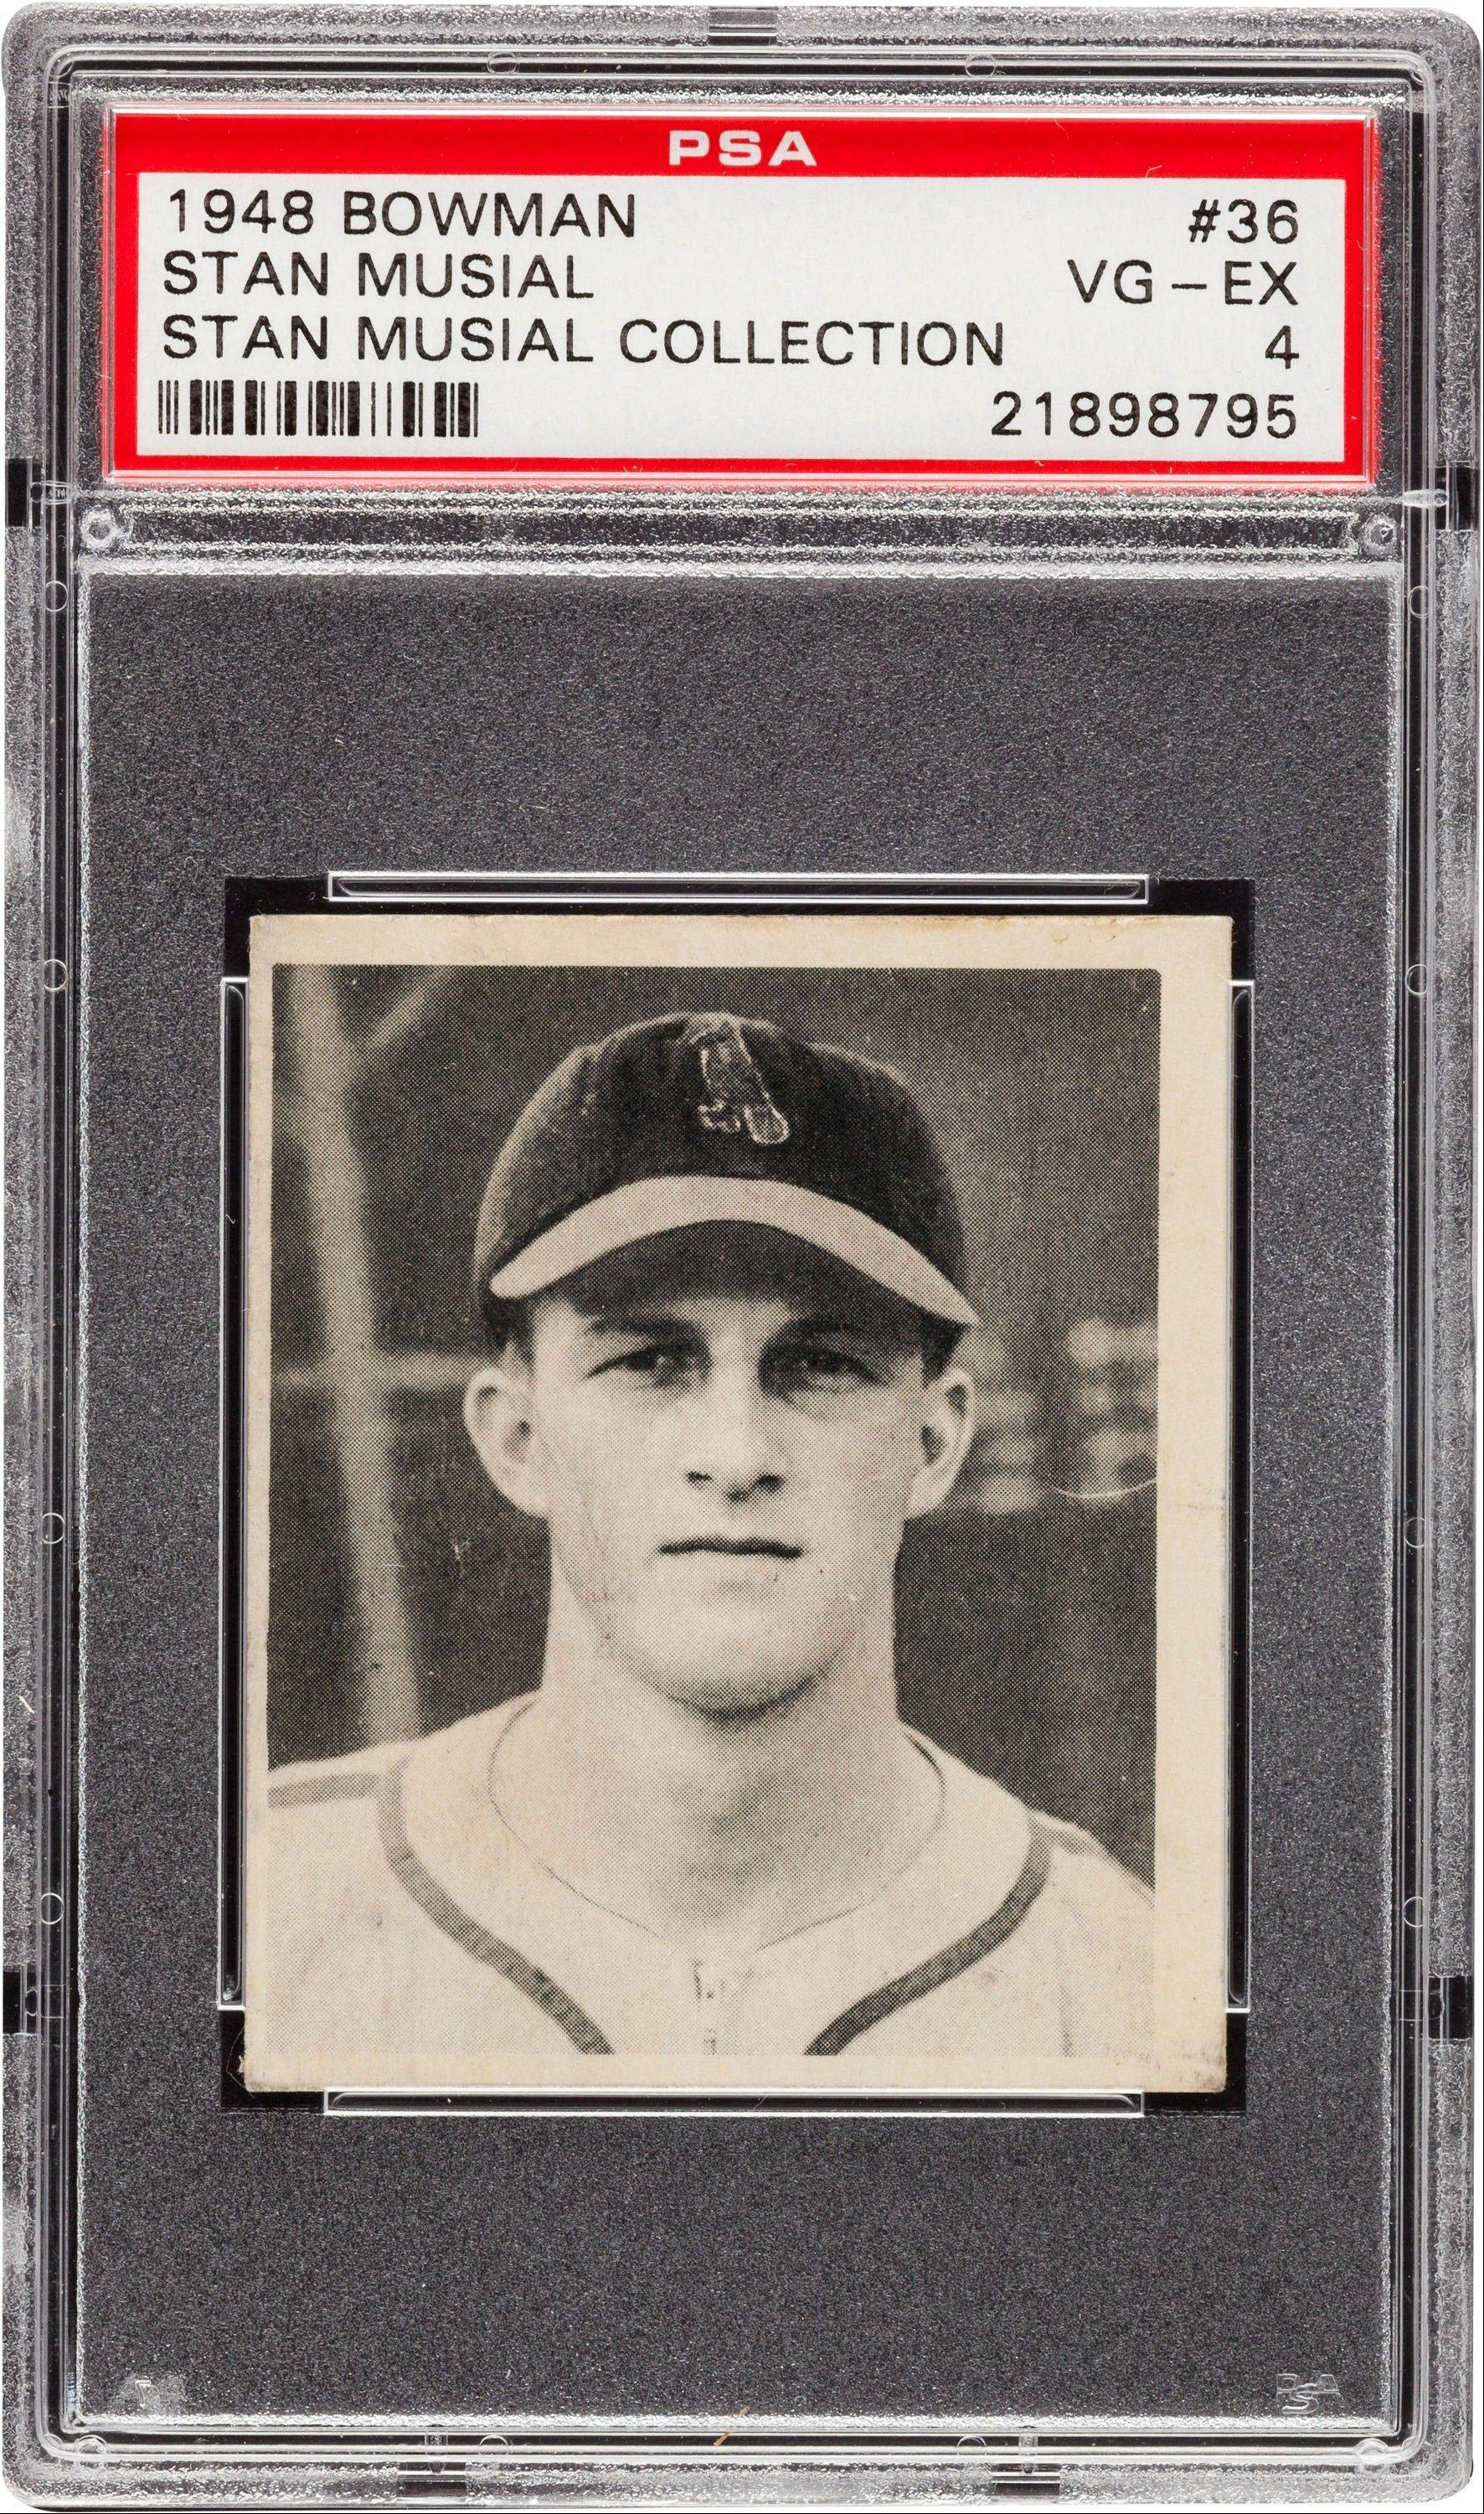 Stan Musial's personally owned 1948 Bowman rookie baseball card sold for $11,950 at auction. Musial died in January at age 92.